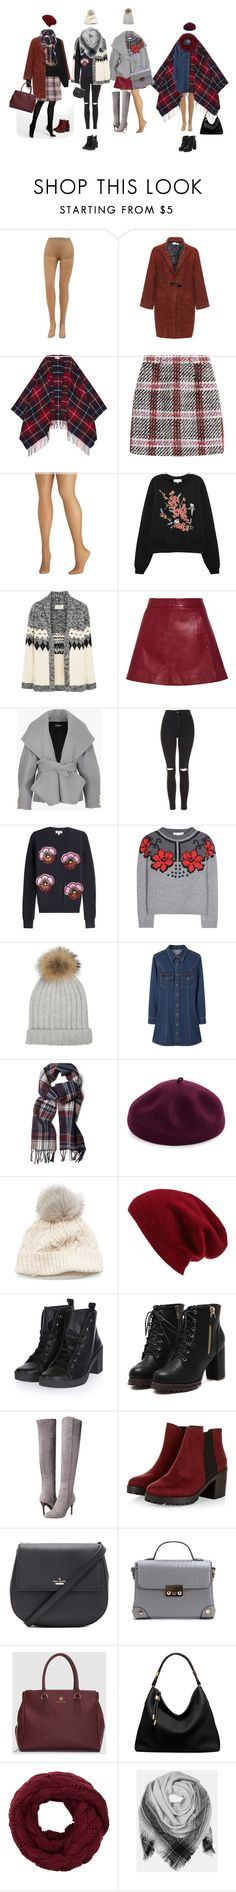 """cold autumn"" by cool-julija ❤ liked on Polyvore featuring OROBLU, Bohème, Claudie Pierlot, Carven, Avenue, The Great, Ganni, Balmain, Topshop and Kenzo"